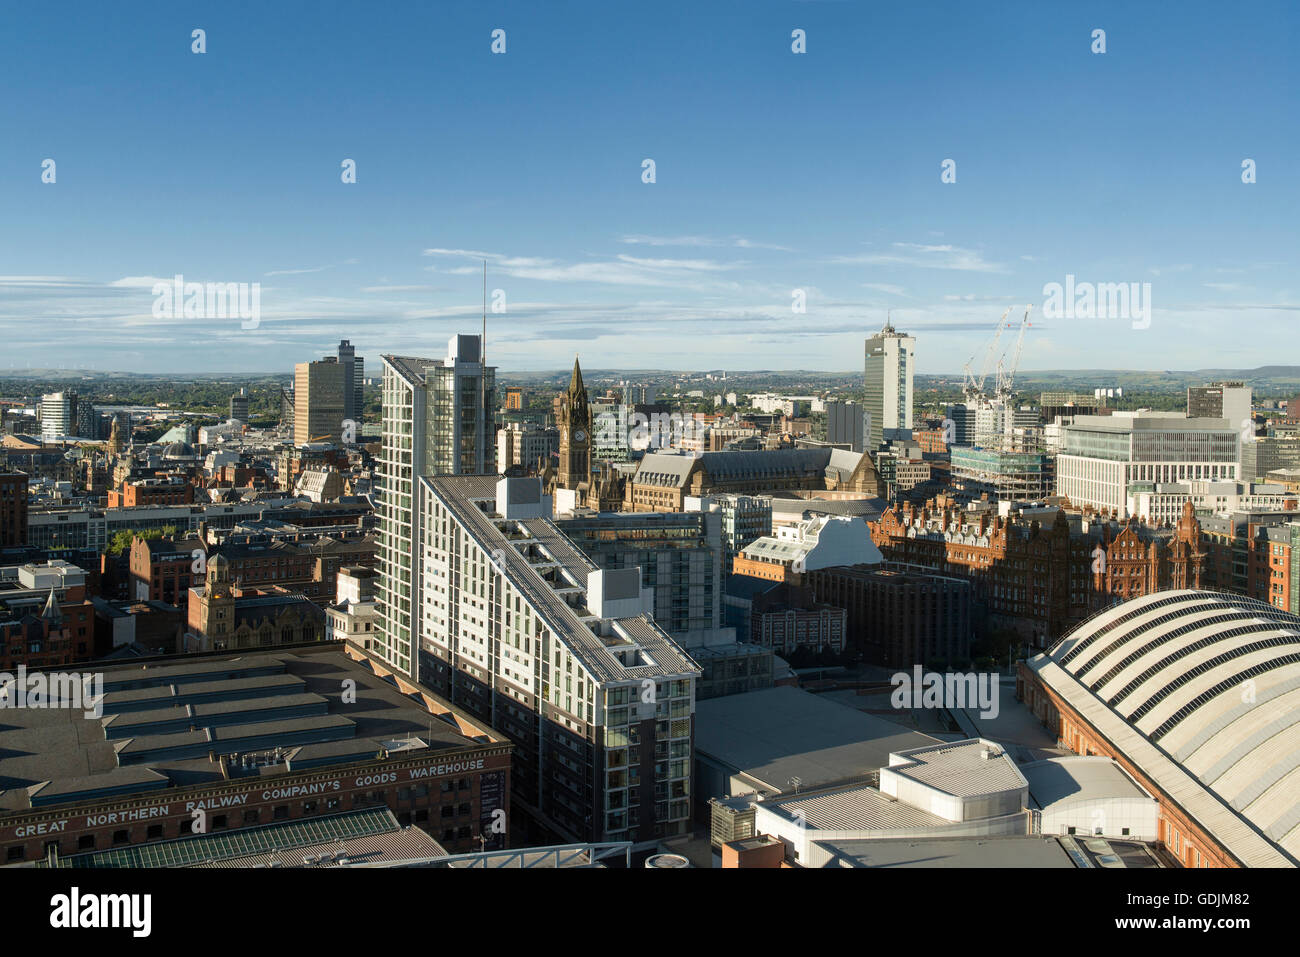 A shot of the city of Manchester skyline, UK, featuring various tall buildings and skyscrapers. - Stock Image